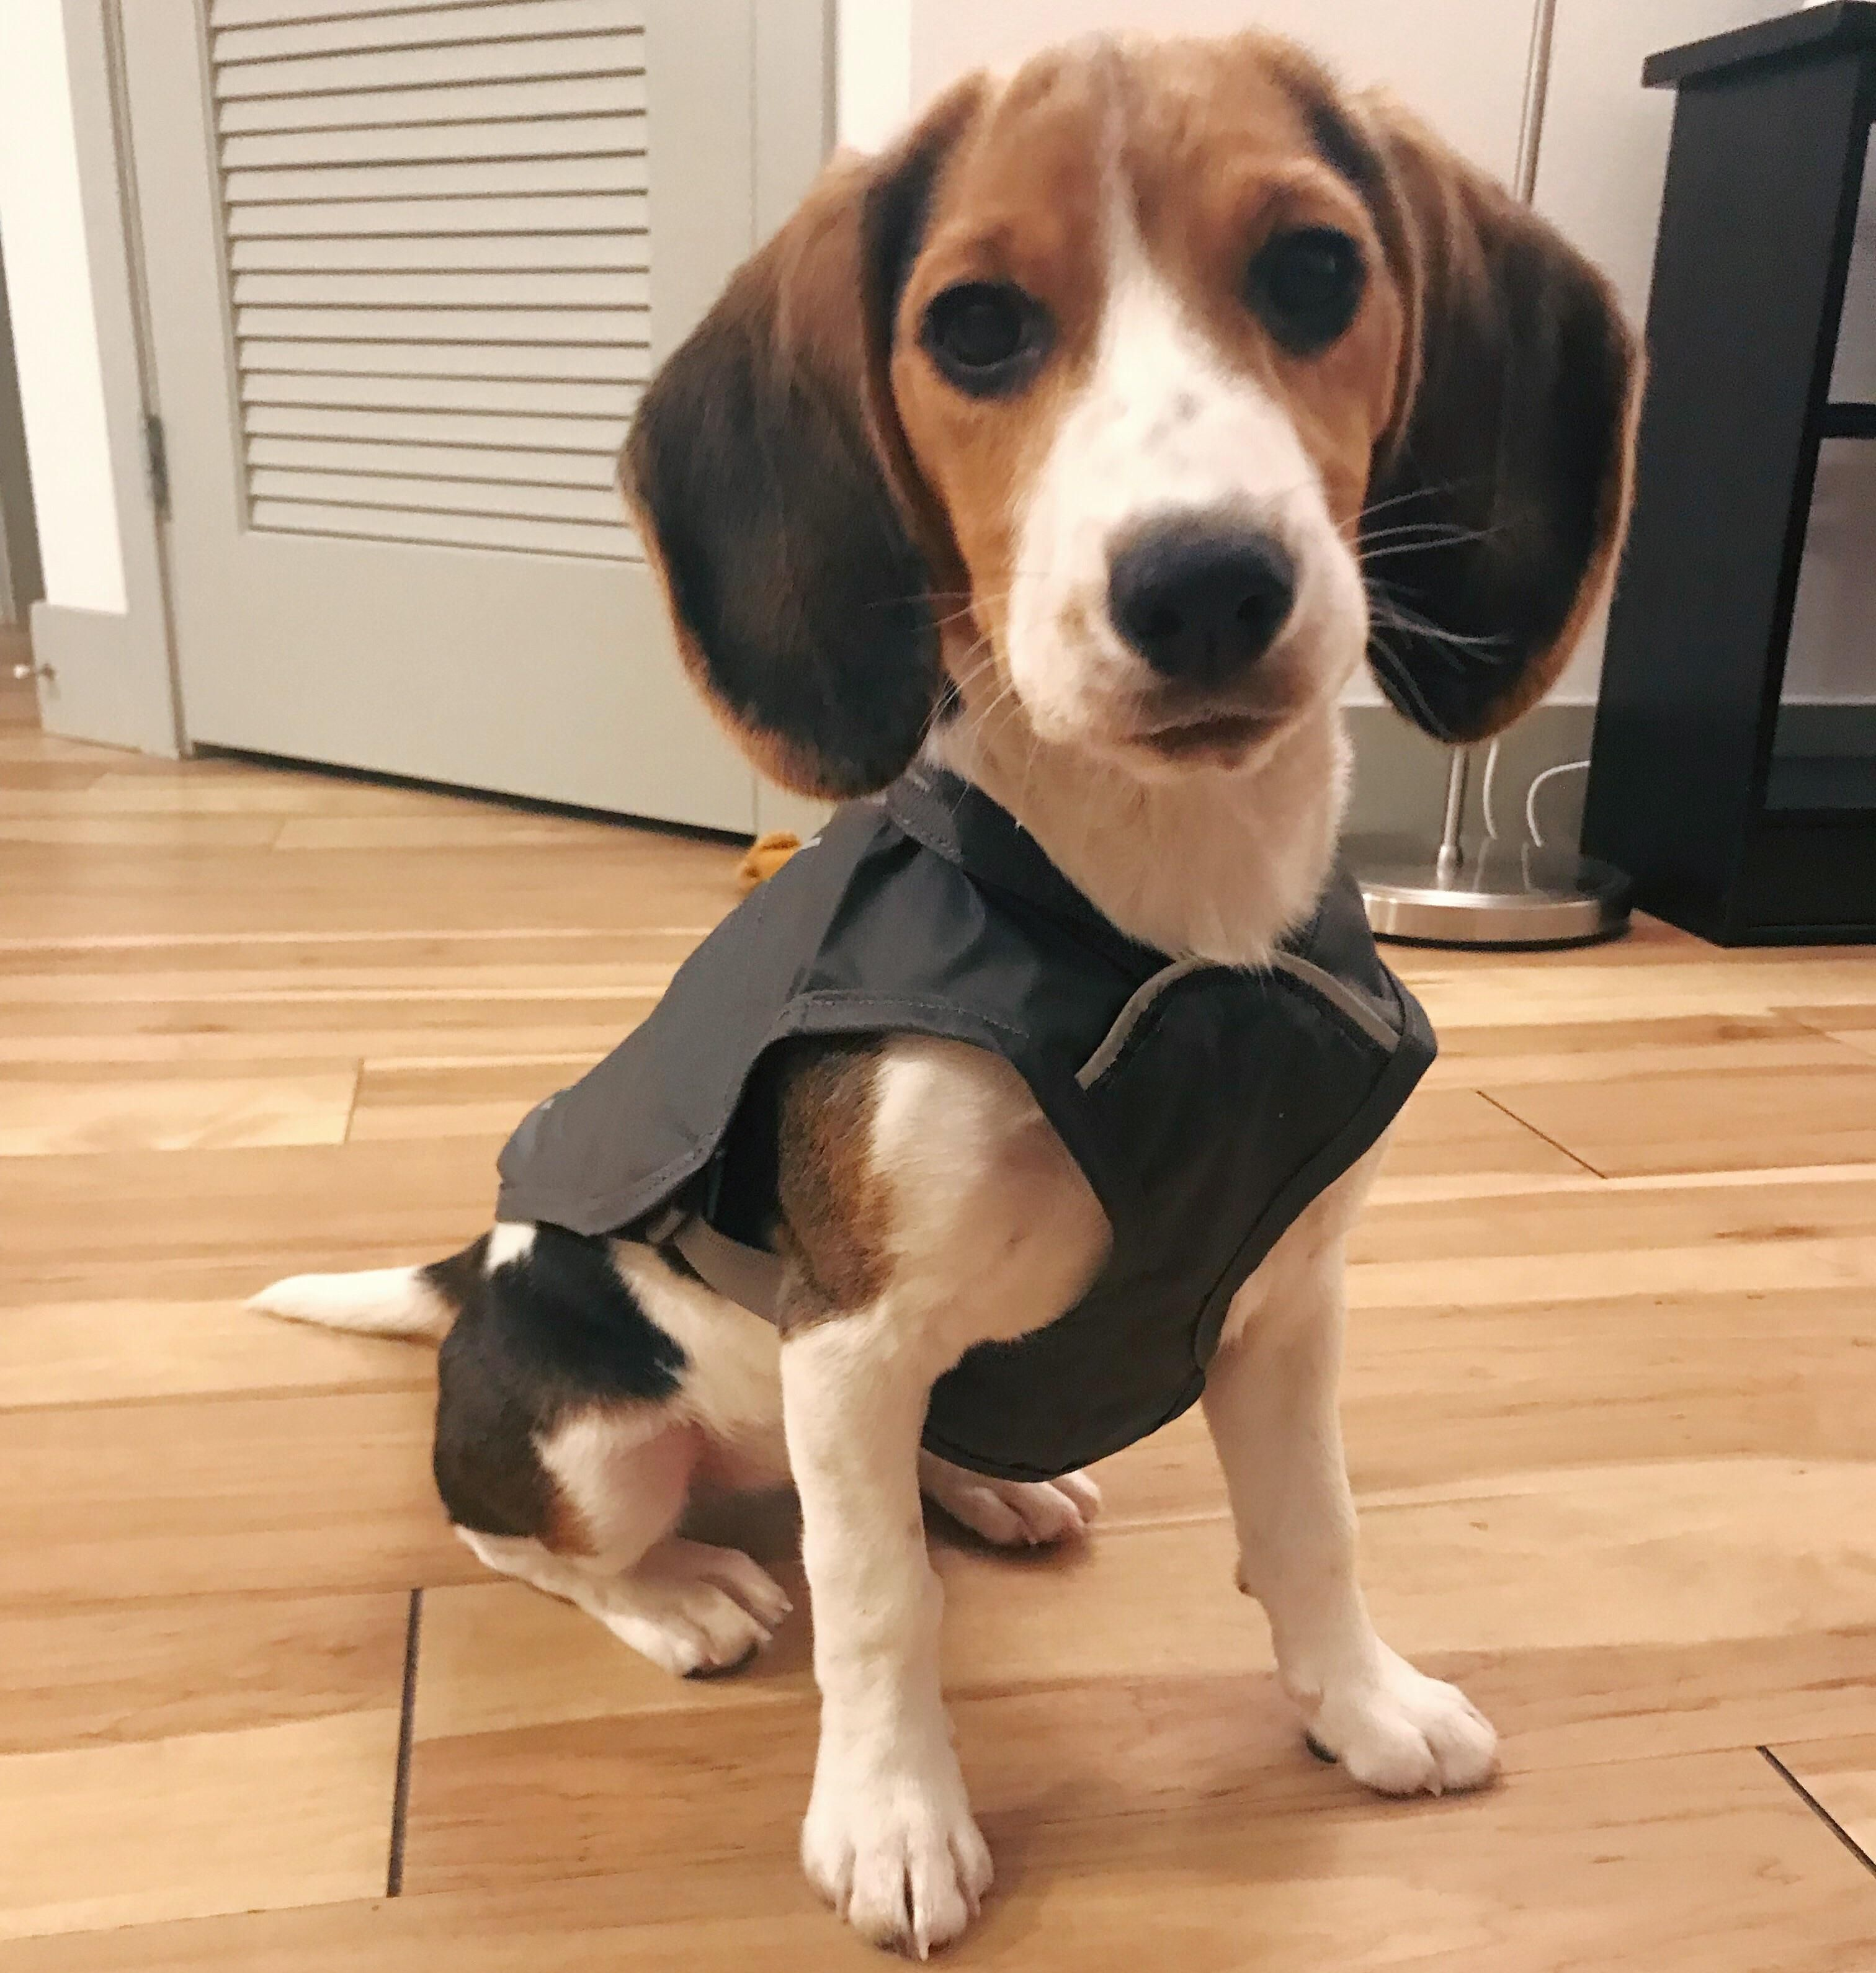 A Rain Jacket Has Been Acquired And Shes Ready For Her First Fall